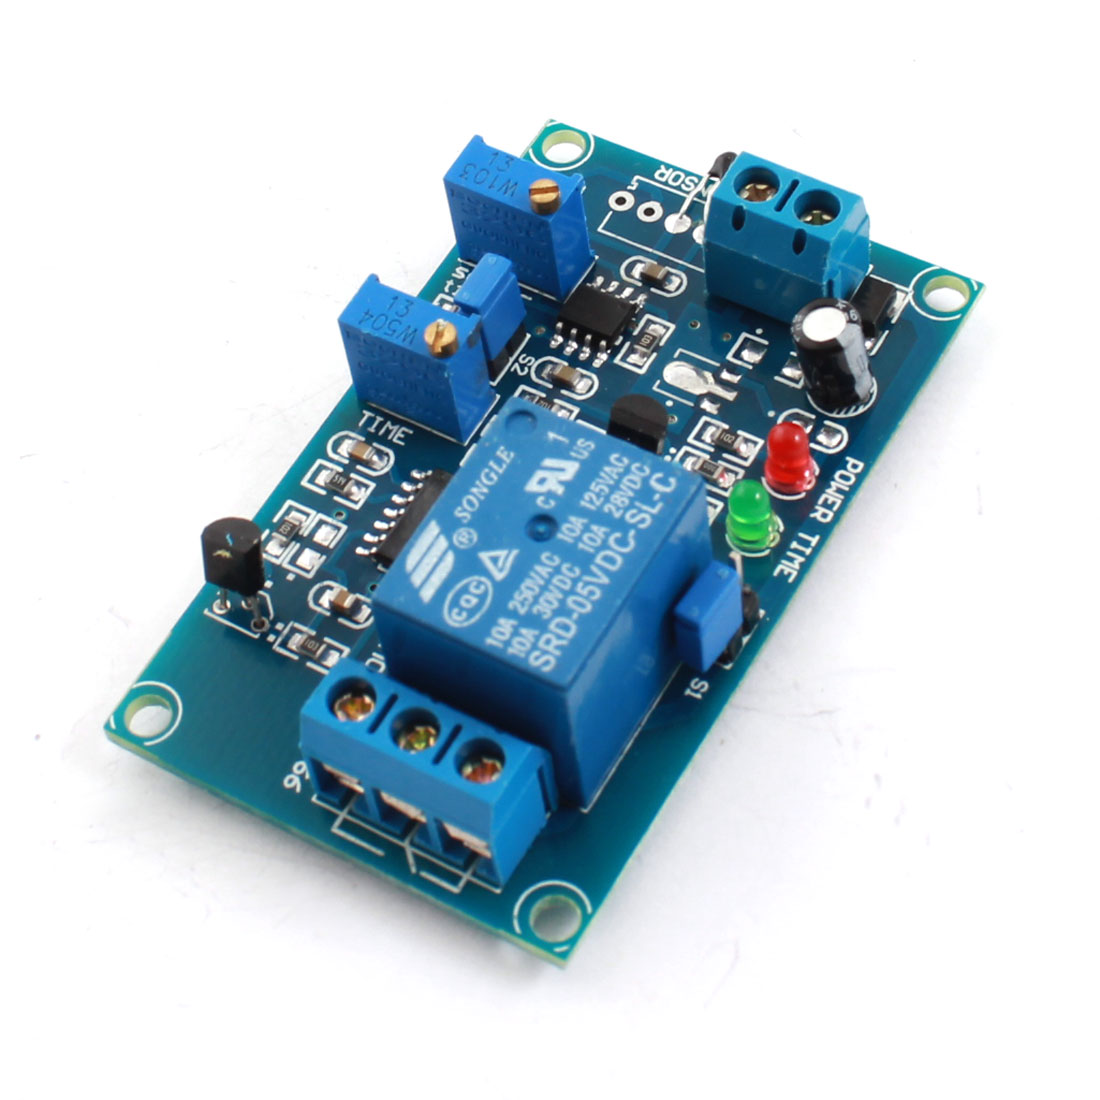 DC5V 2-LED Lamp 1 Way Low Temperature Trigger Thermosensitive Time Delay PCB Board Relay Module Blue